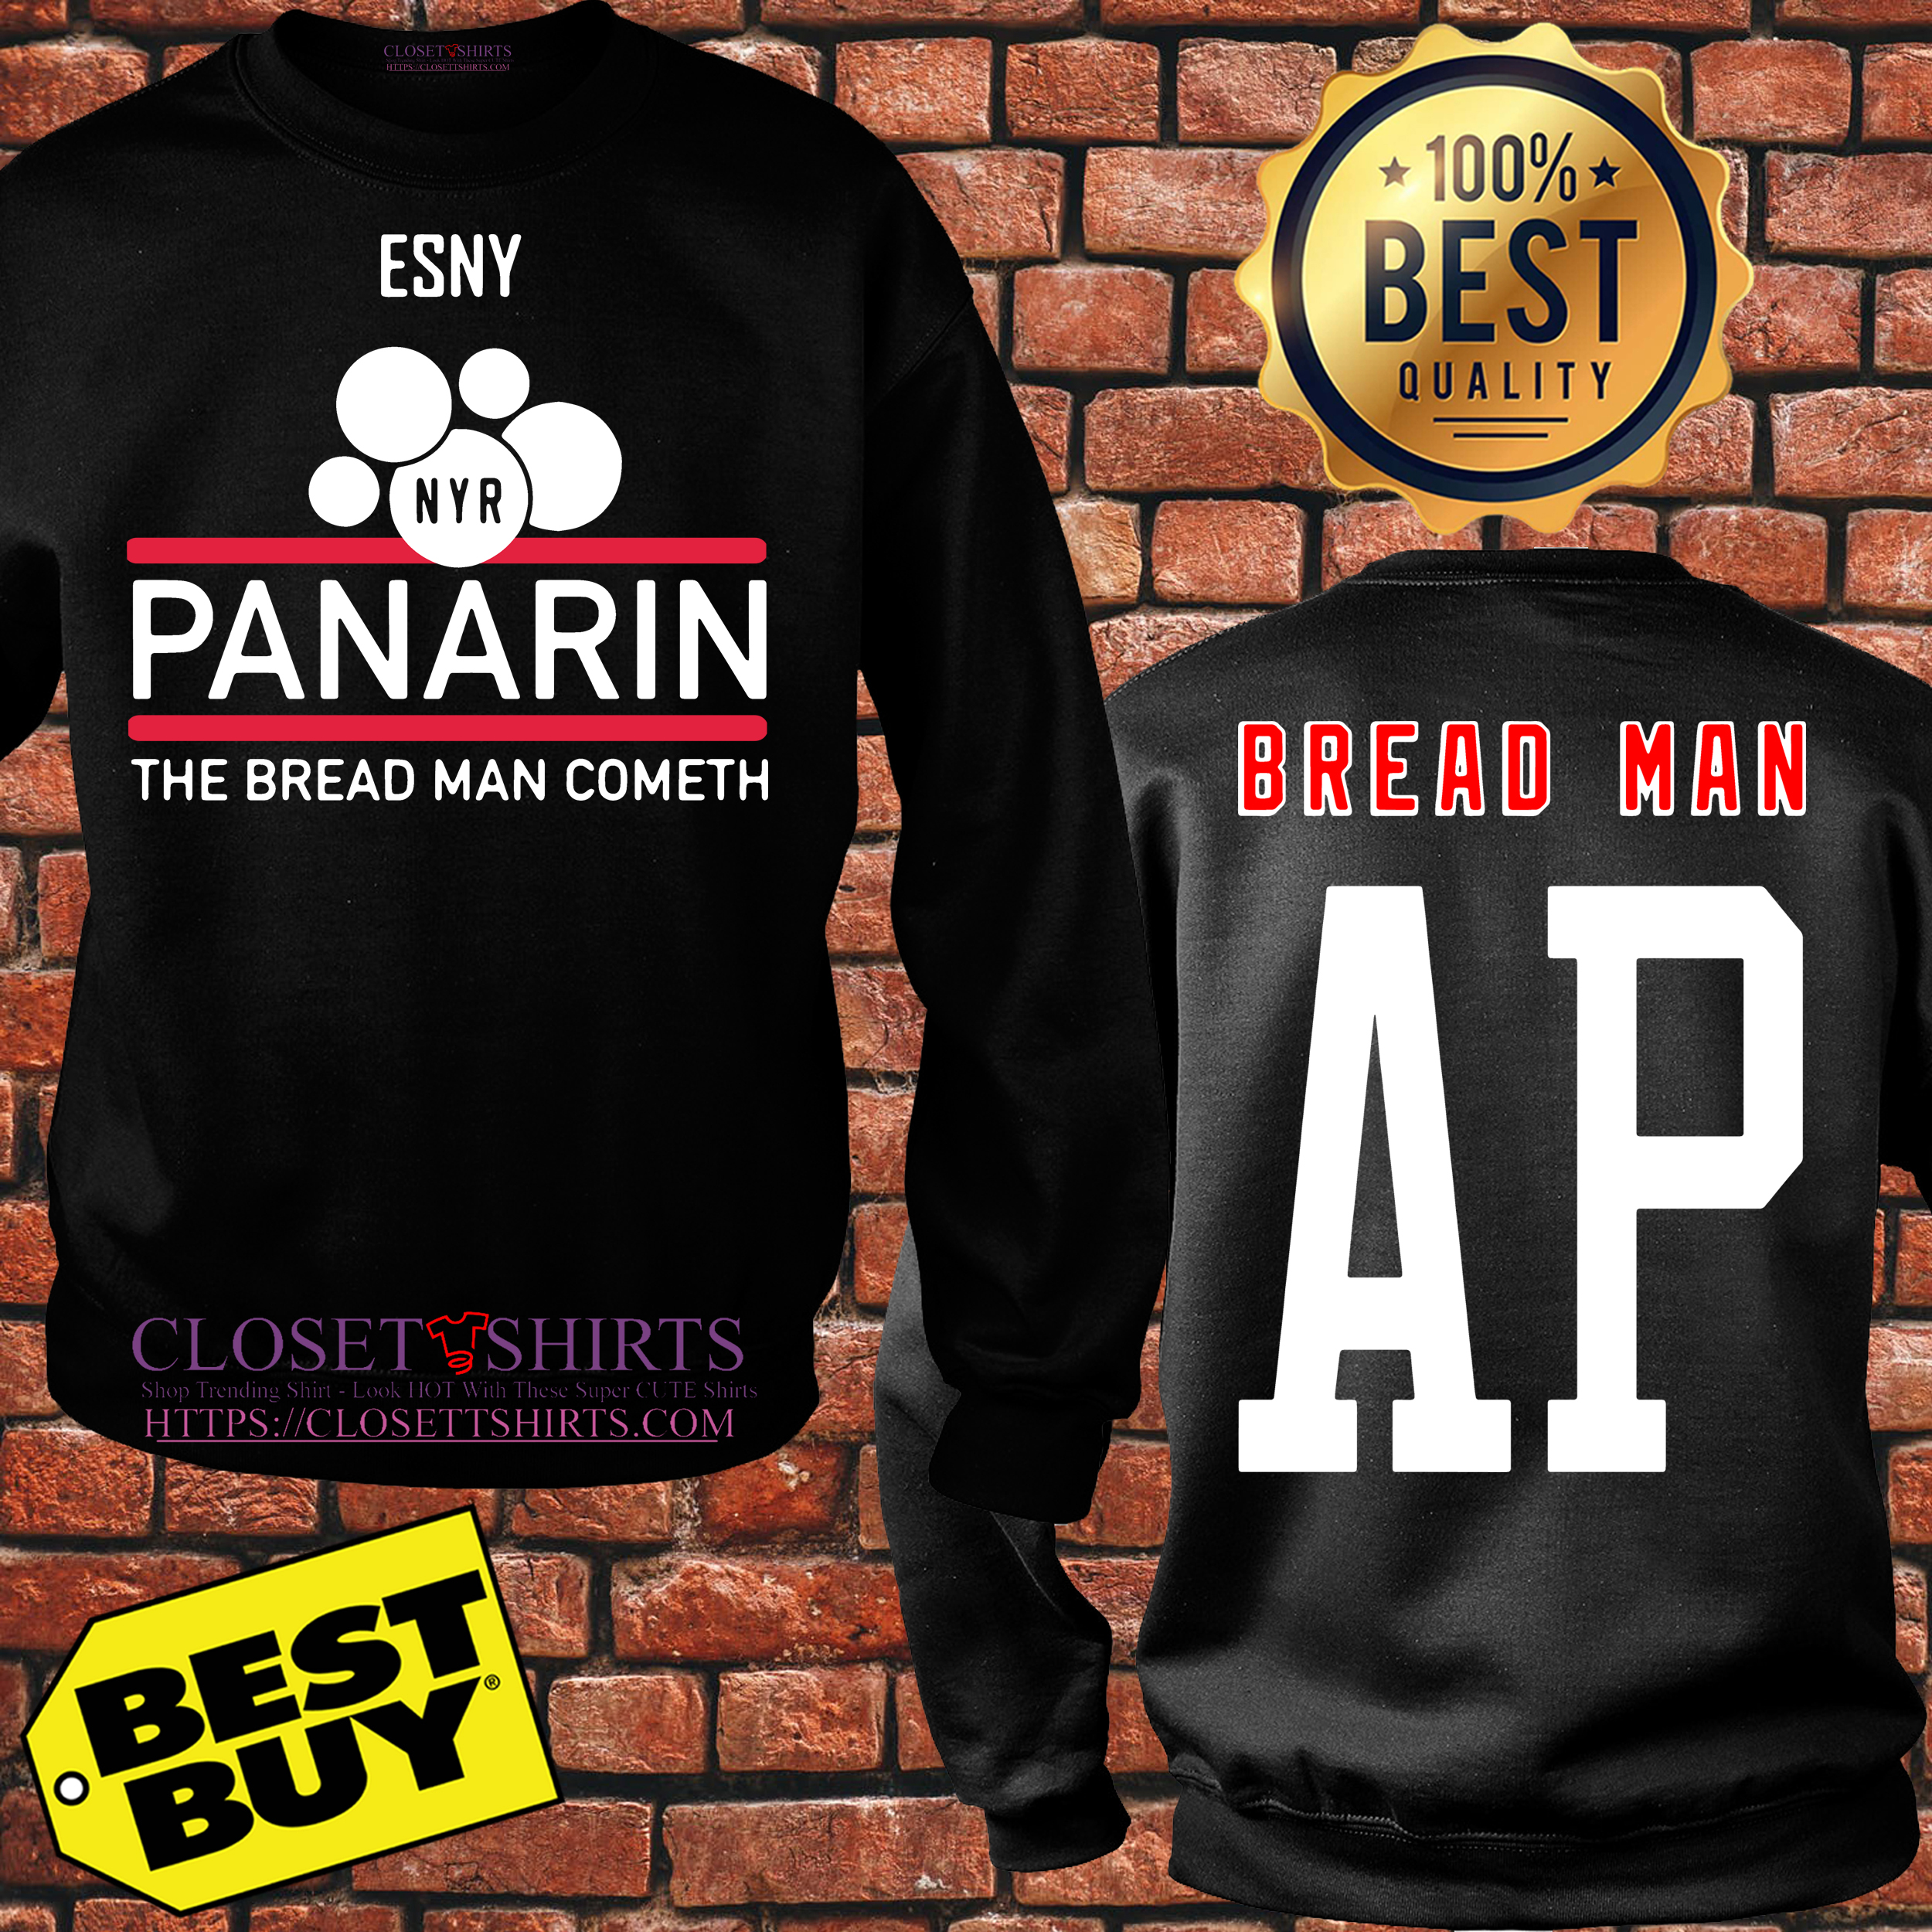 New York Rangers Artemi Panarin Sny Panarin The Bread Man Cometh sweatshirt